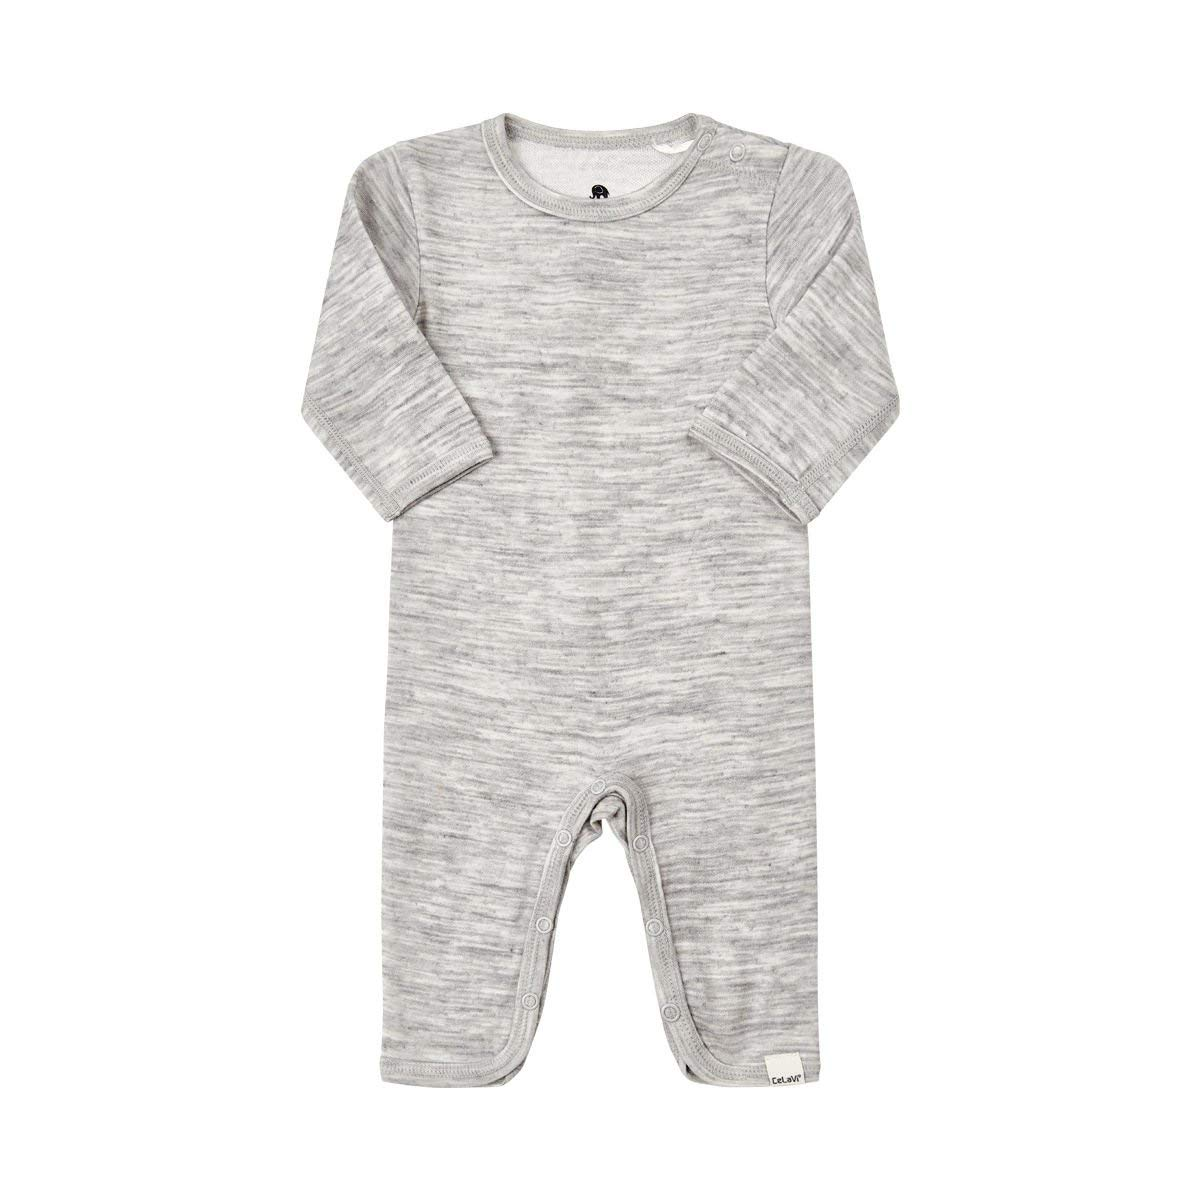 57ae9a08749 Amazon.com  CeLaVi Merino Wool Bamboo Baby-Toddler Unisex Romper  Clothing